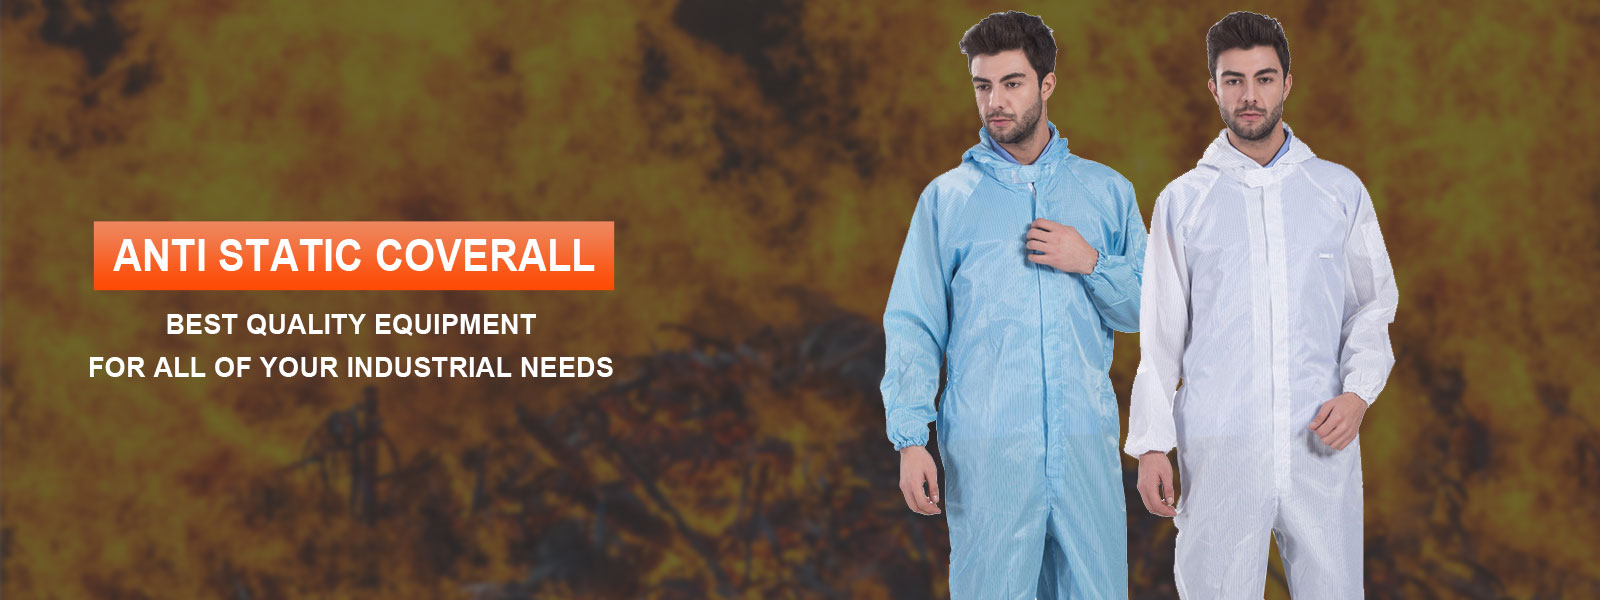 Anti Static Coverall Manufacturers in Antigua